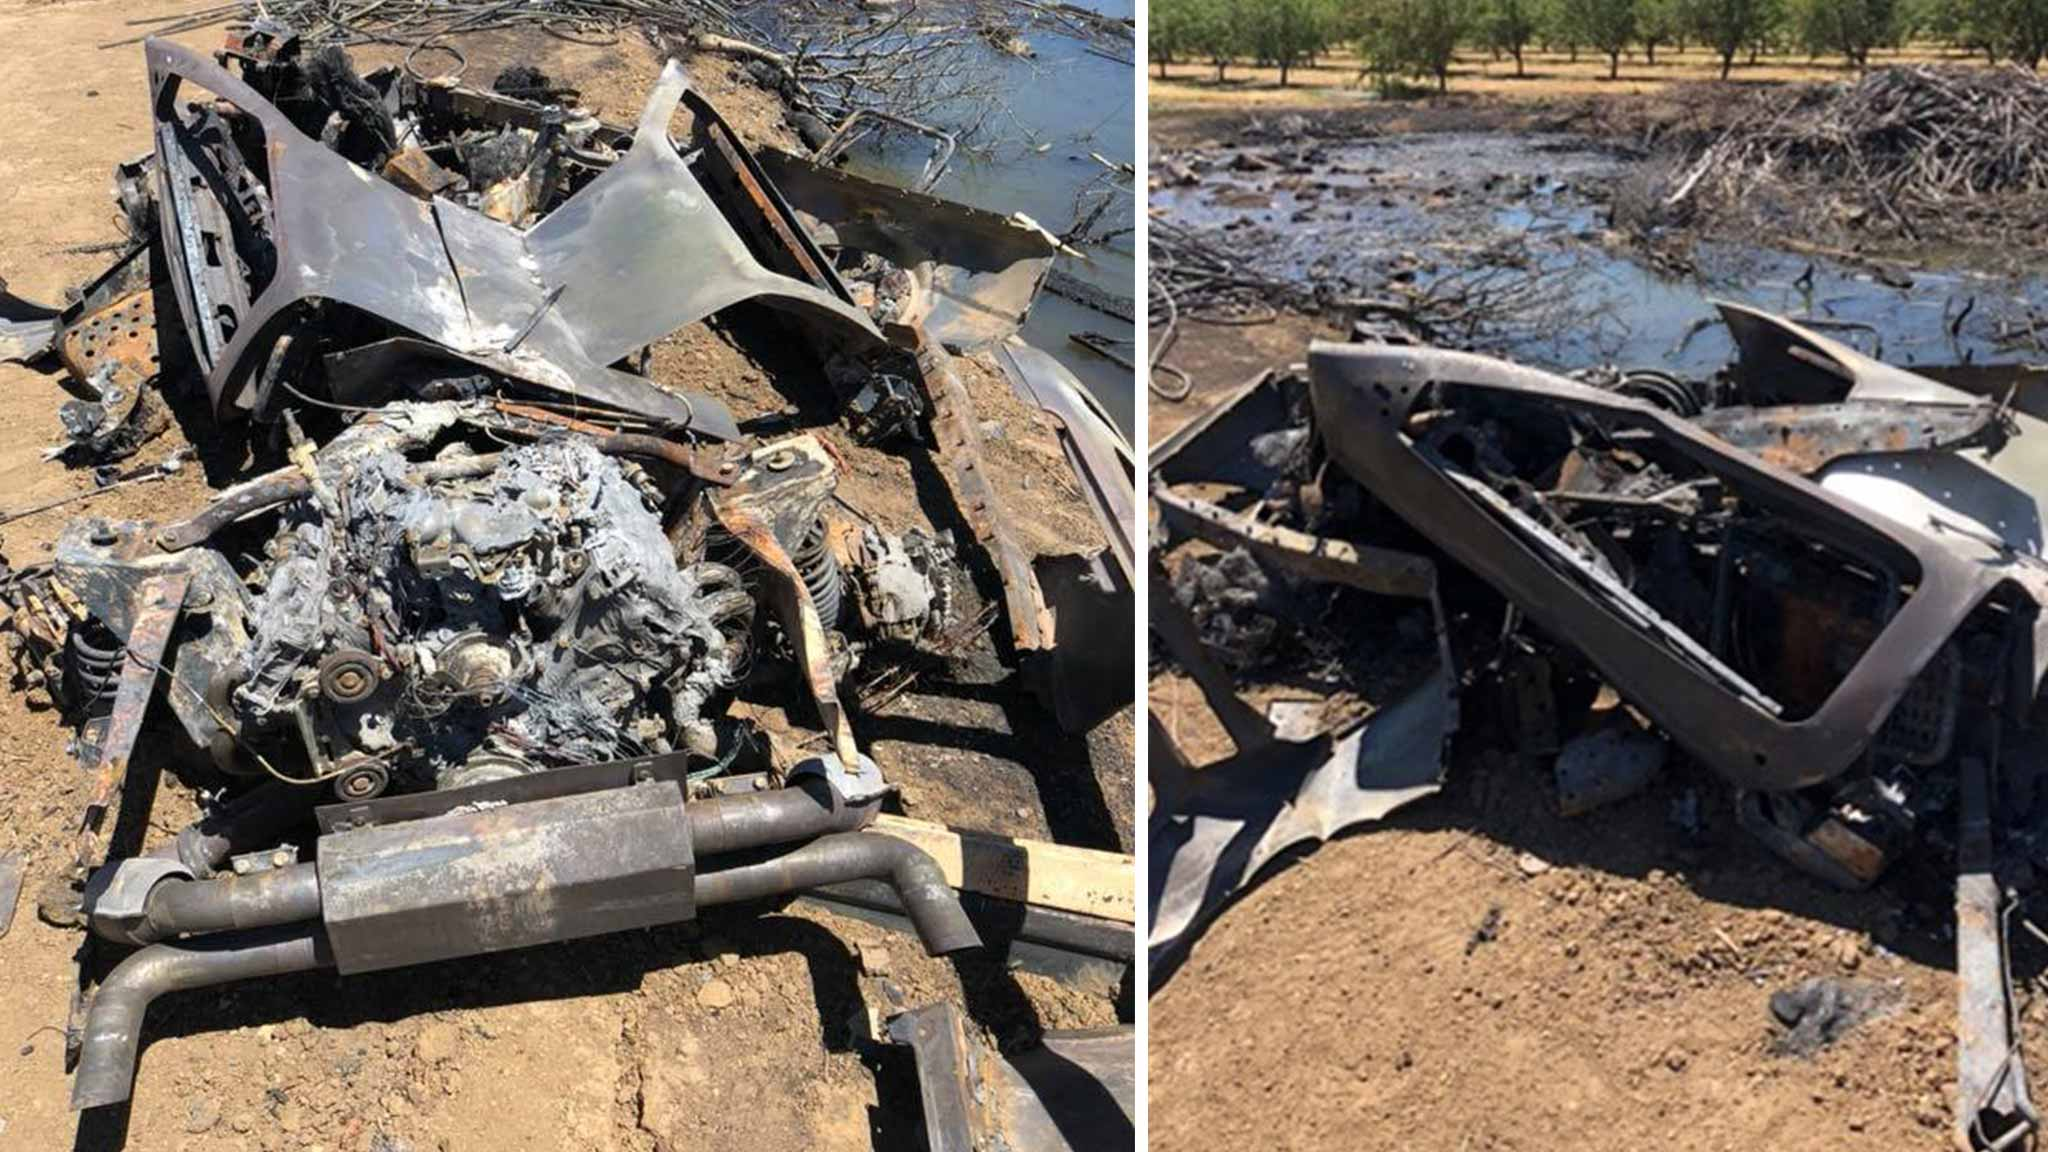 Stolen, Melted DeLorean | DeLoreanDirectory.com